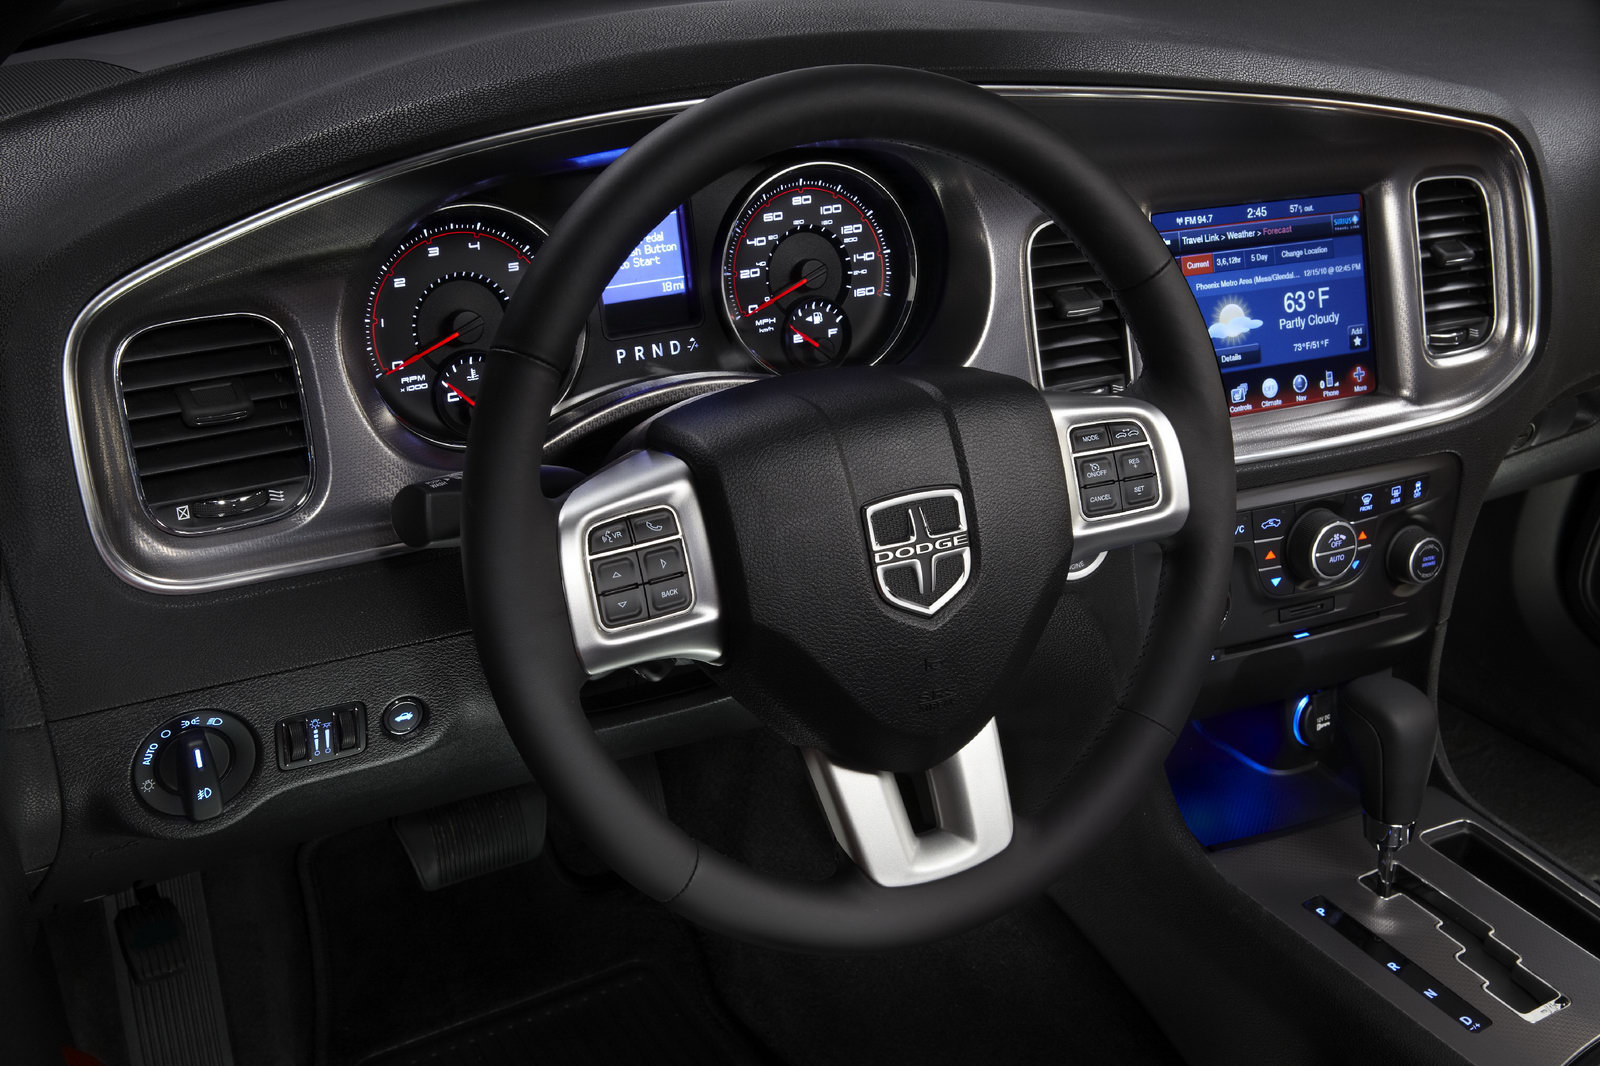 2012 Dodge Charger TBi Powered by Alfa Romeo's 1,75 Liter